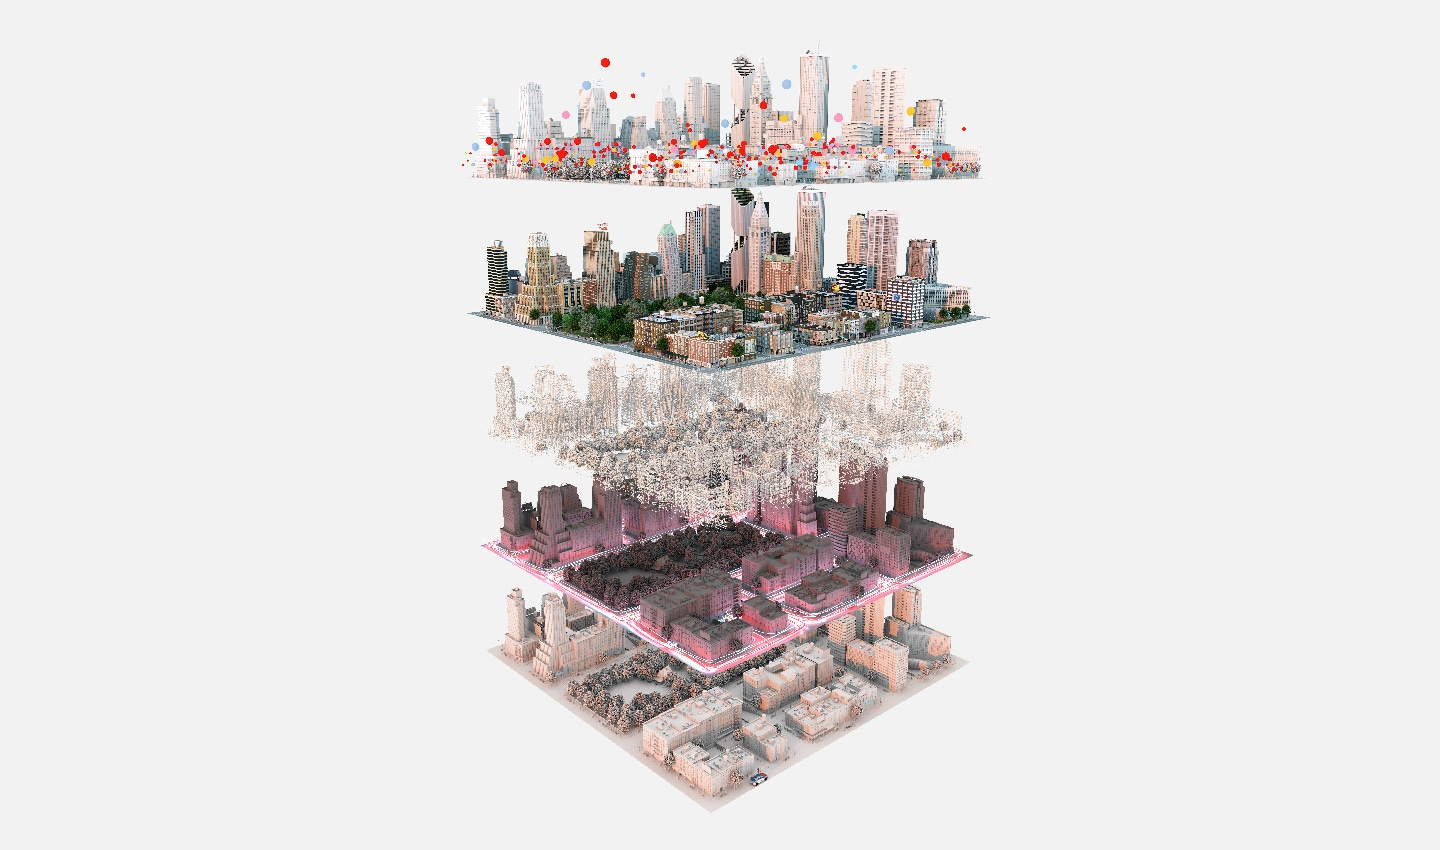 TomTom's HD maps are made of numerous layers, each bringing more detail than the last. They're now so comprehensive that they're being used in automated vehicles.